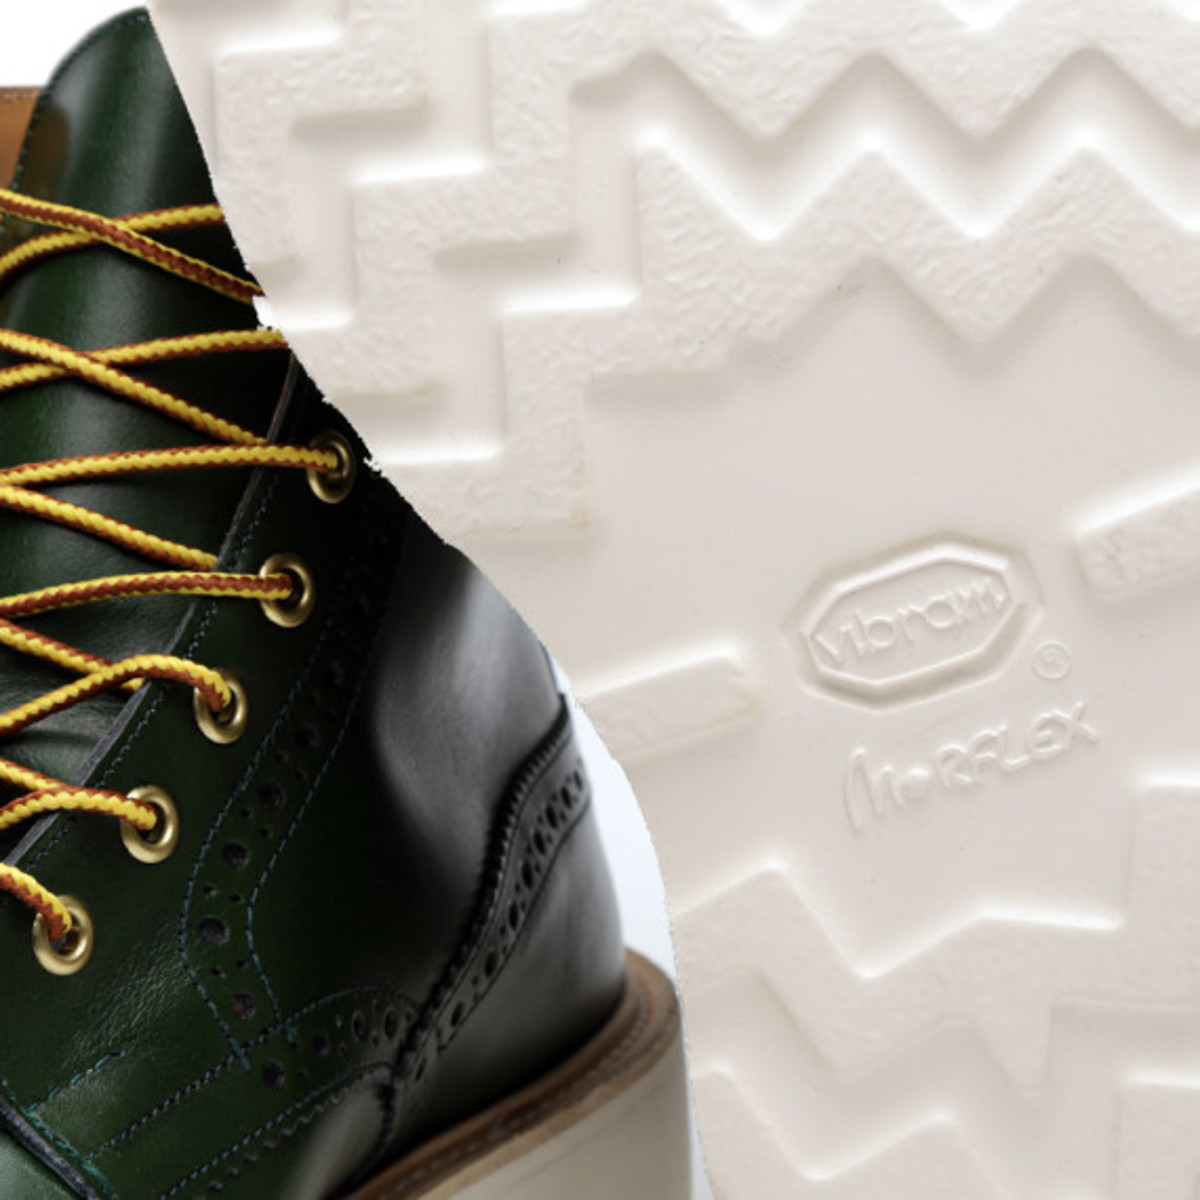 end-trickers-vibram-sole-stow-boot-10